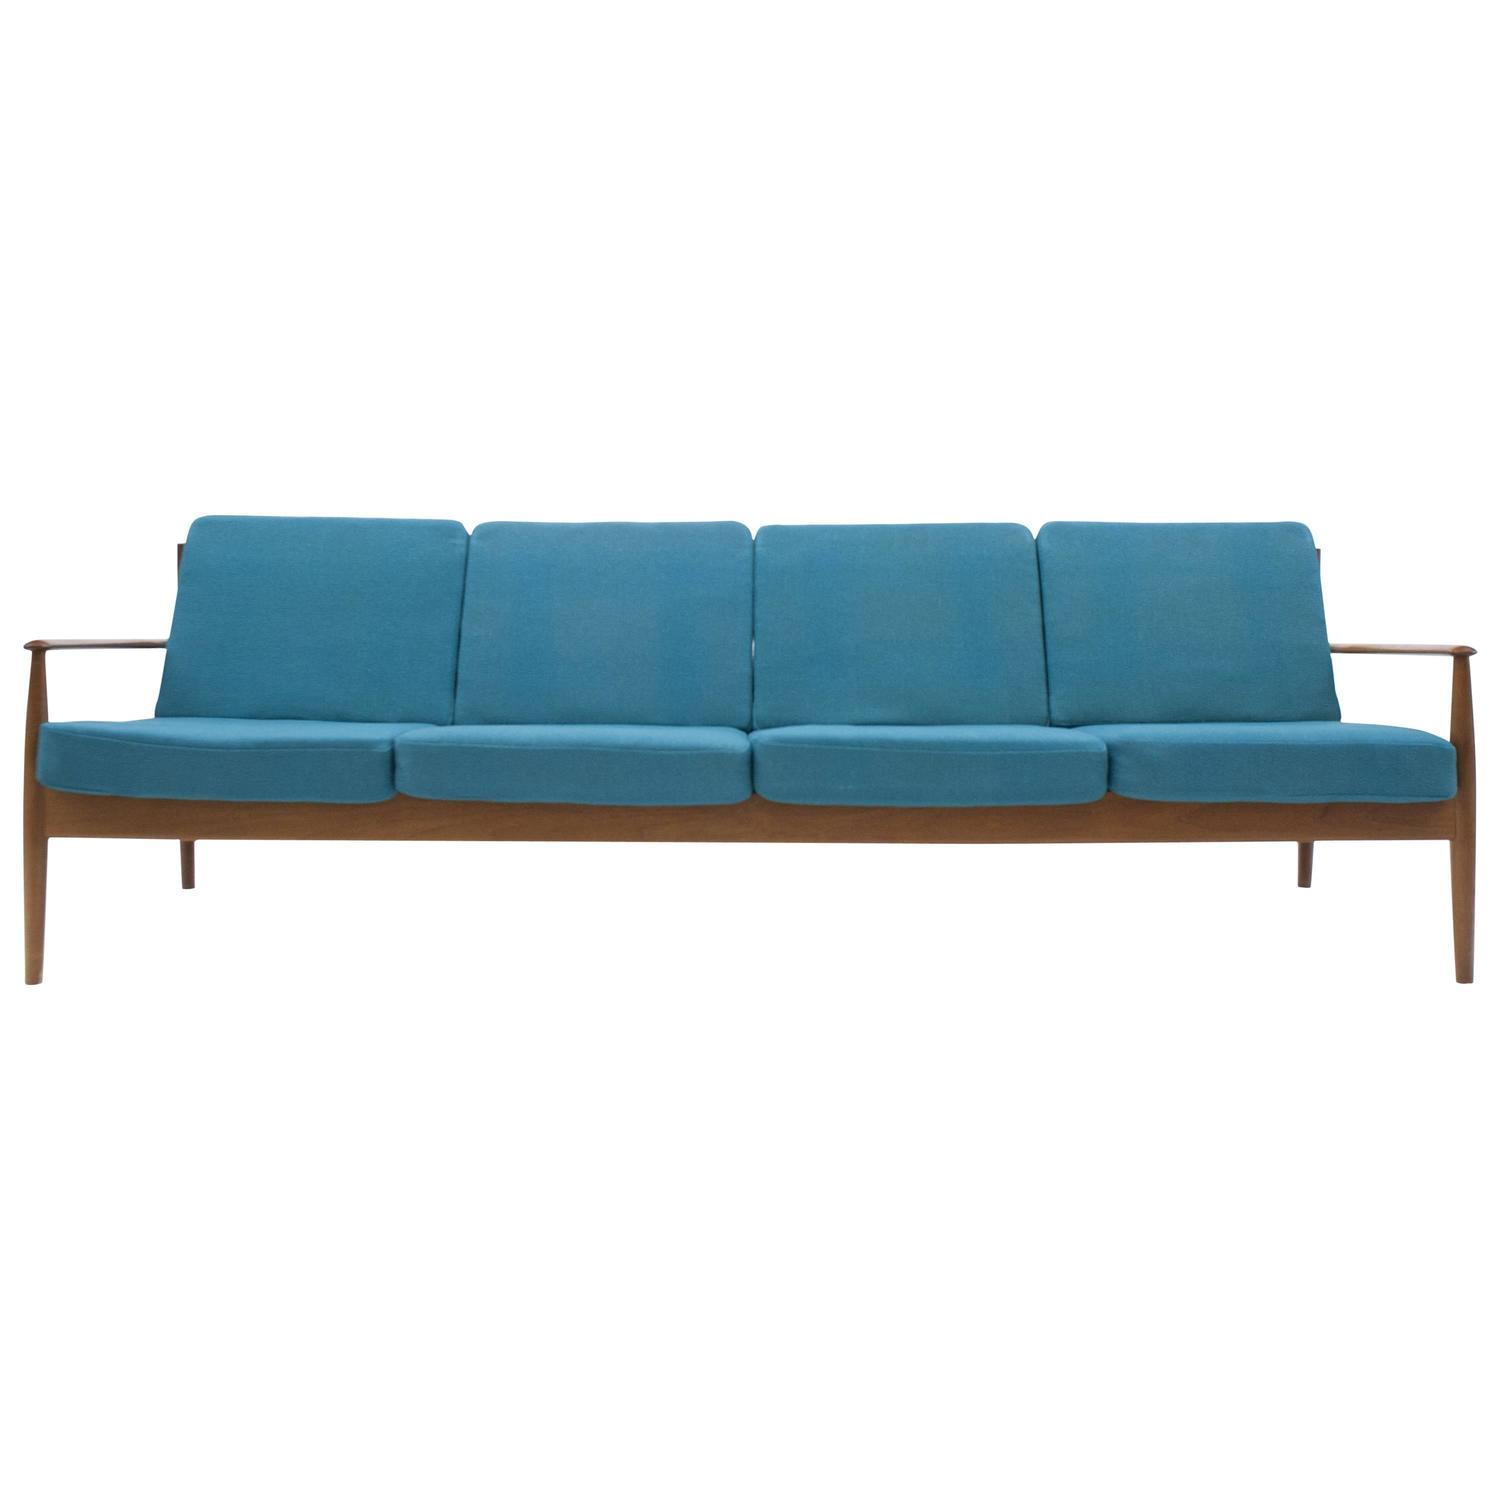 Danish modern classic grete jalk long four seat sofa for for Long couches for sale